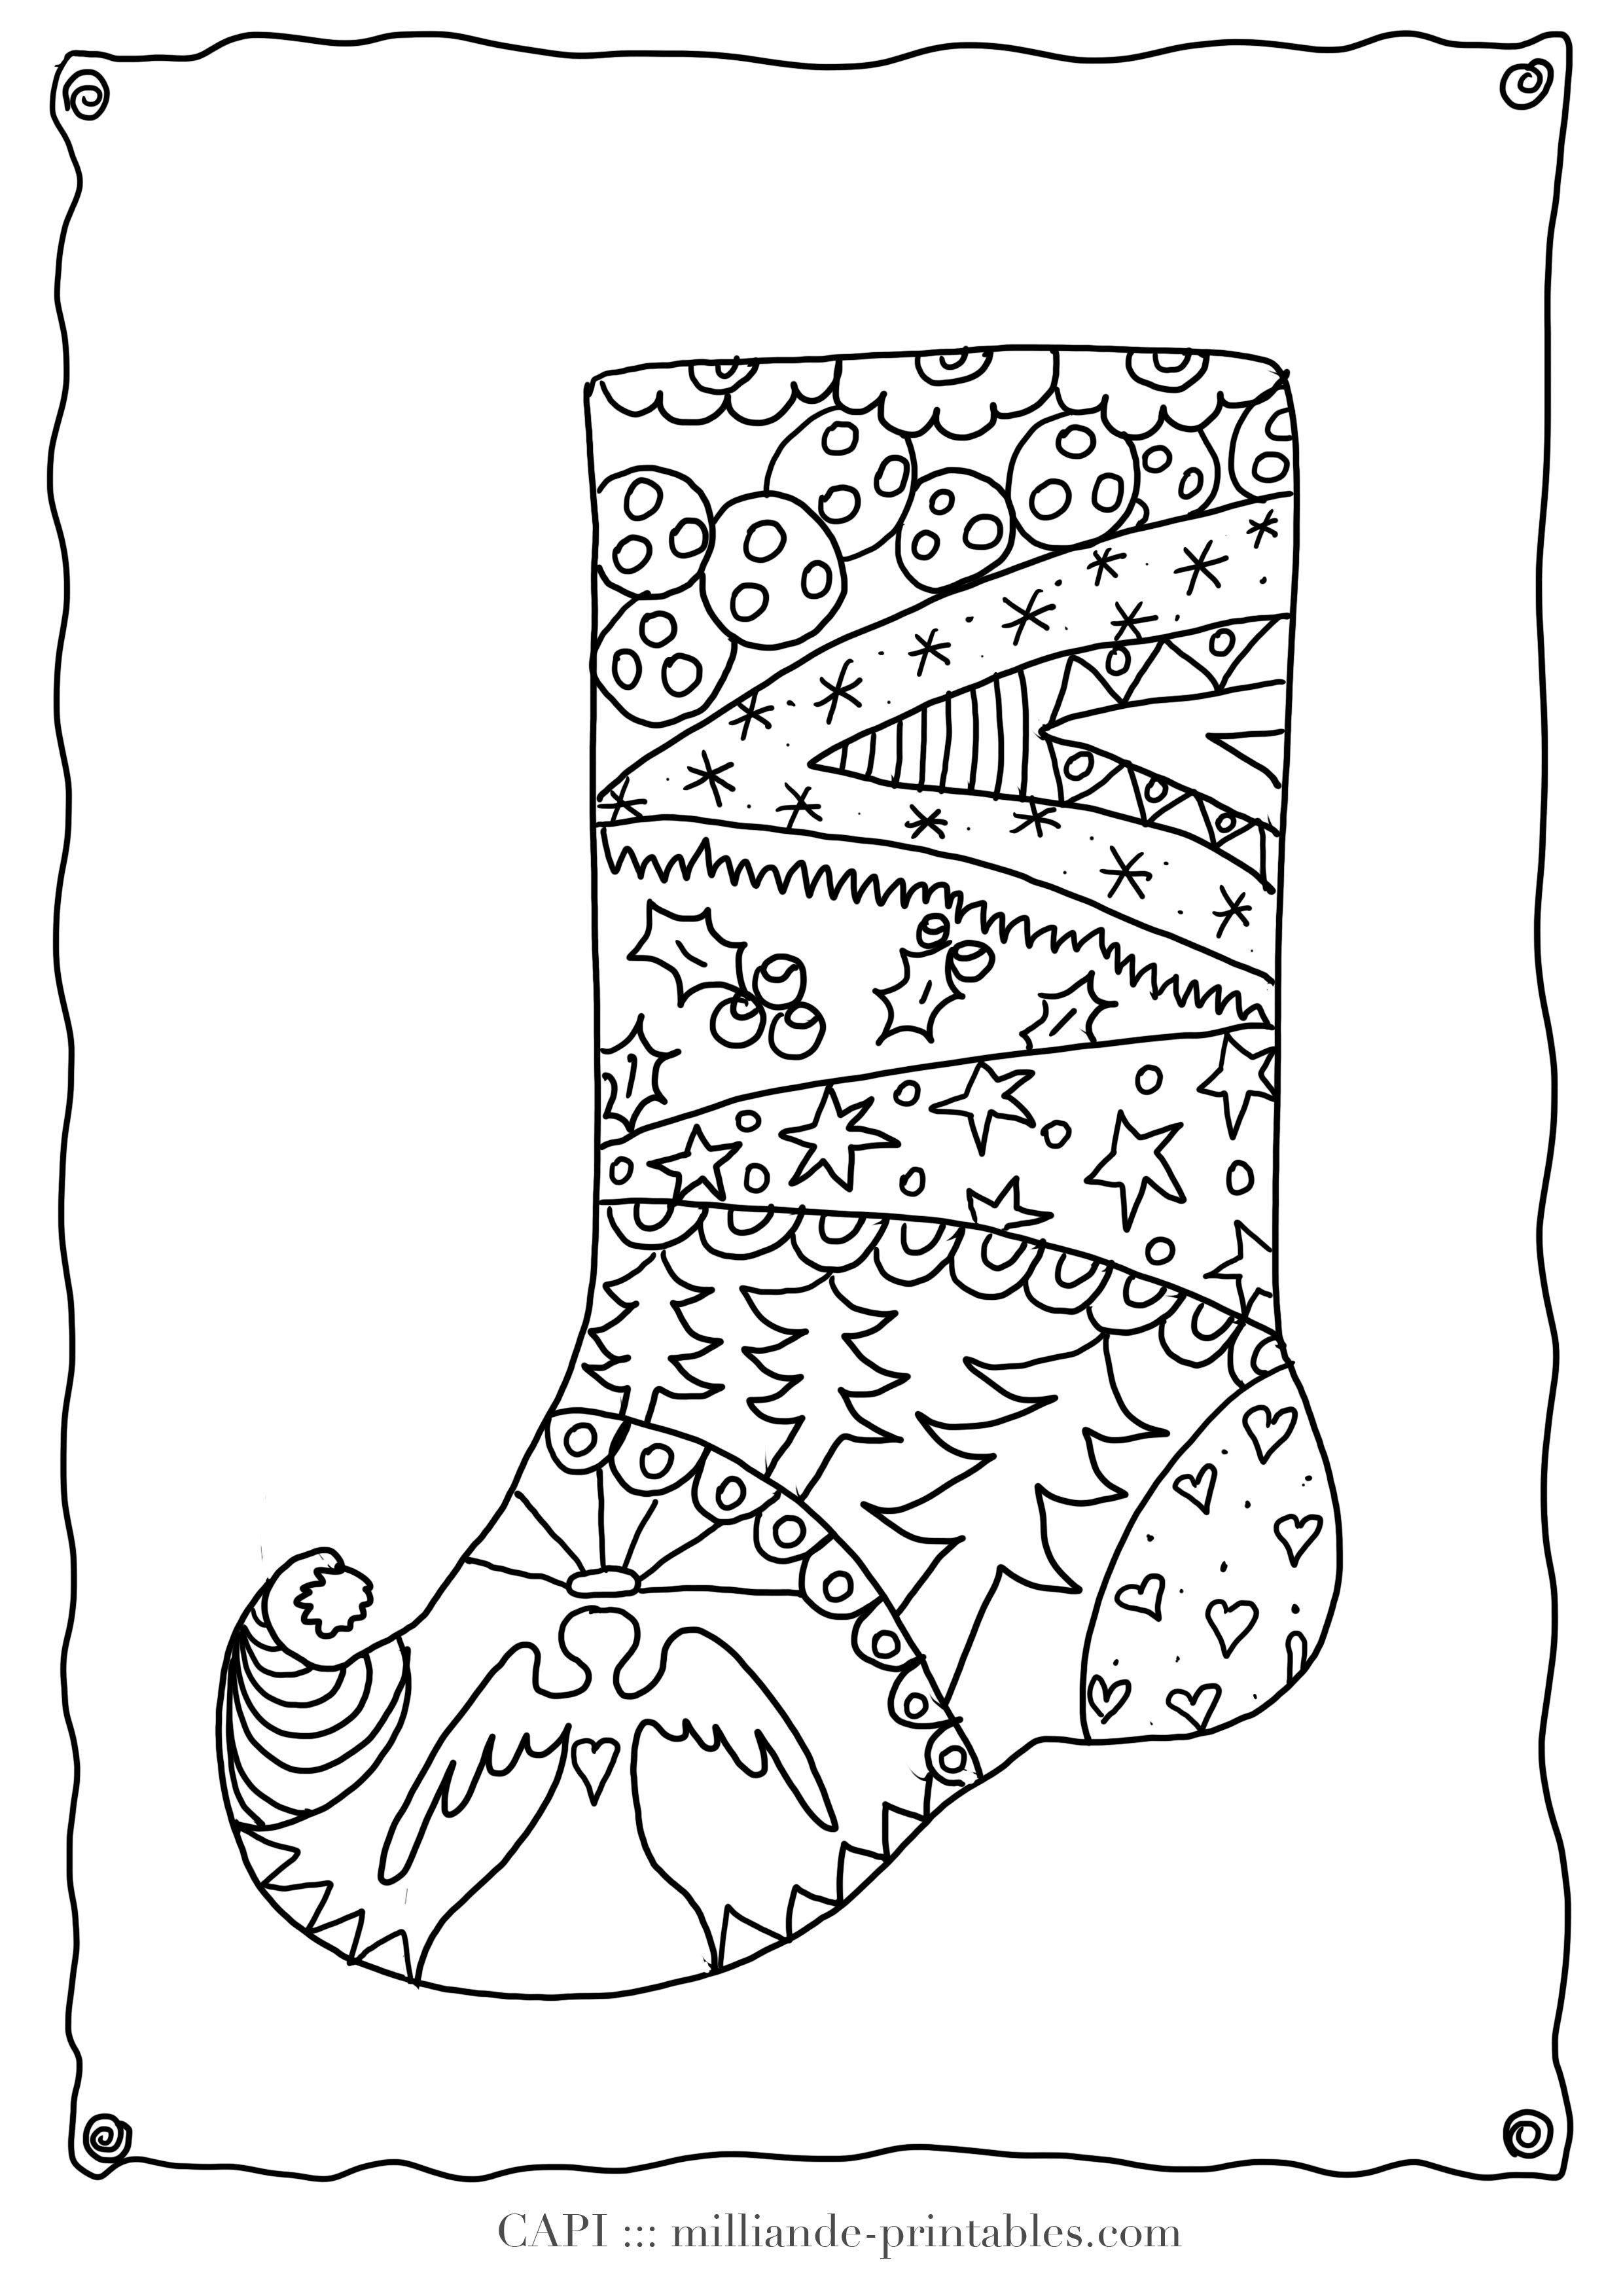 Christmas Art Coloring Pages With Detailed Bing Images Design Pinterest